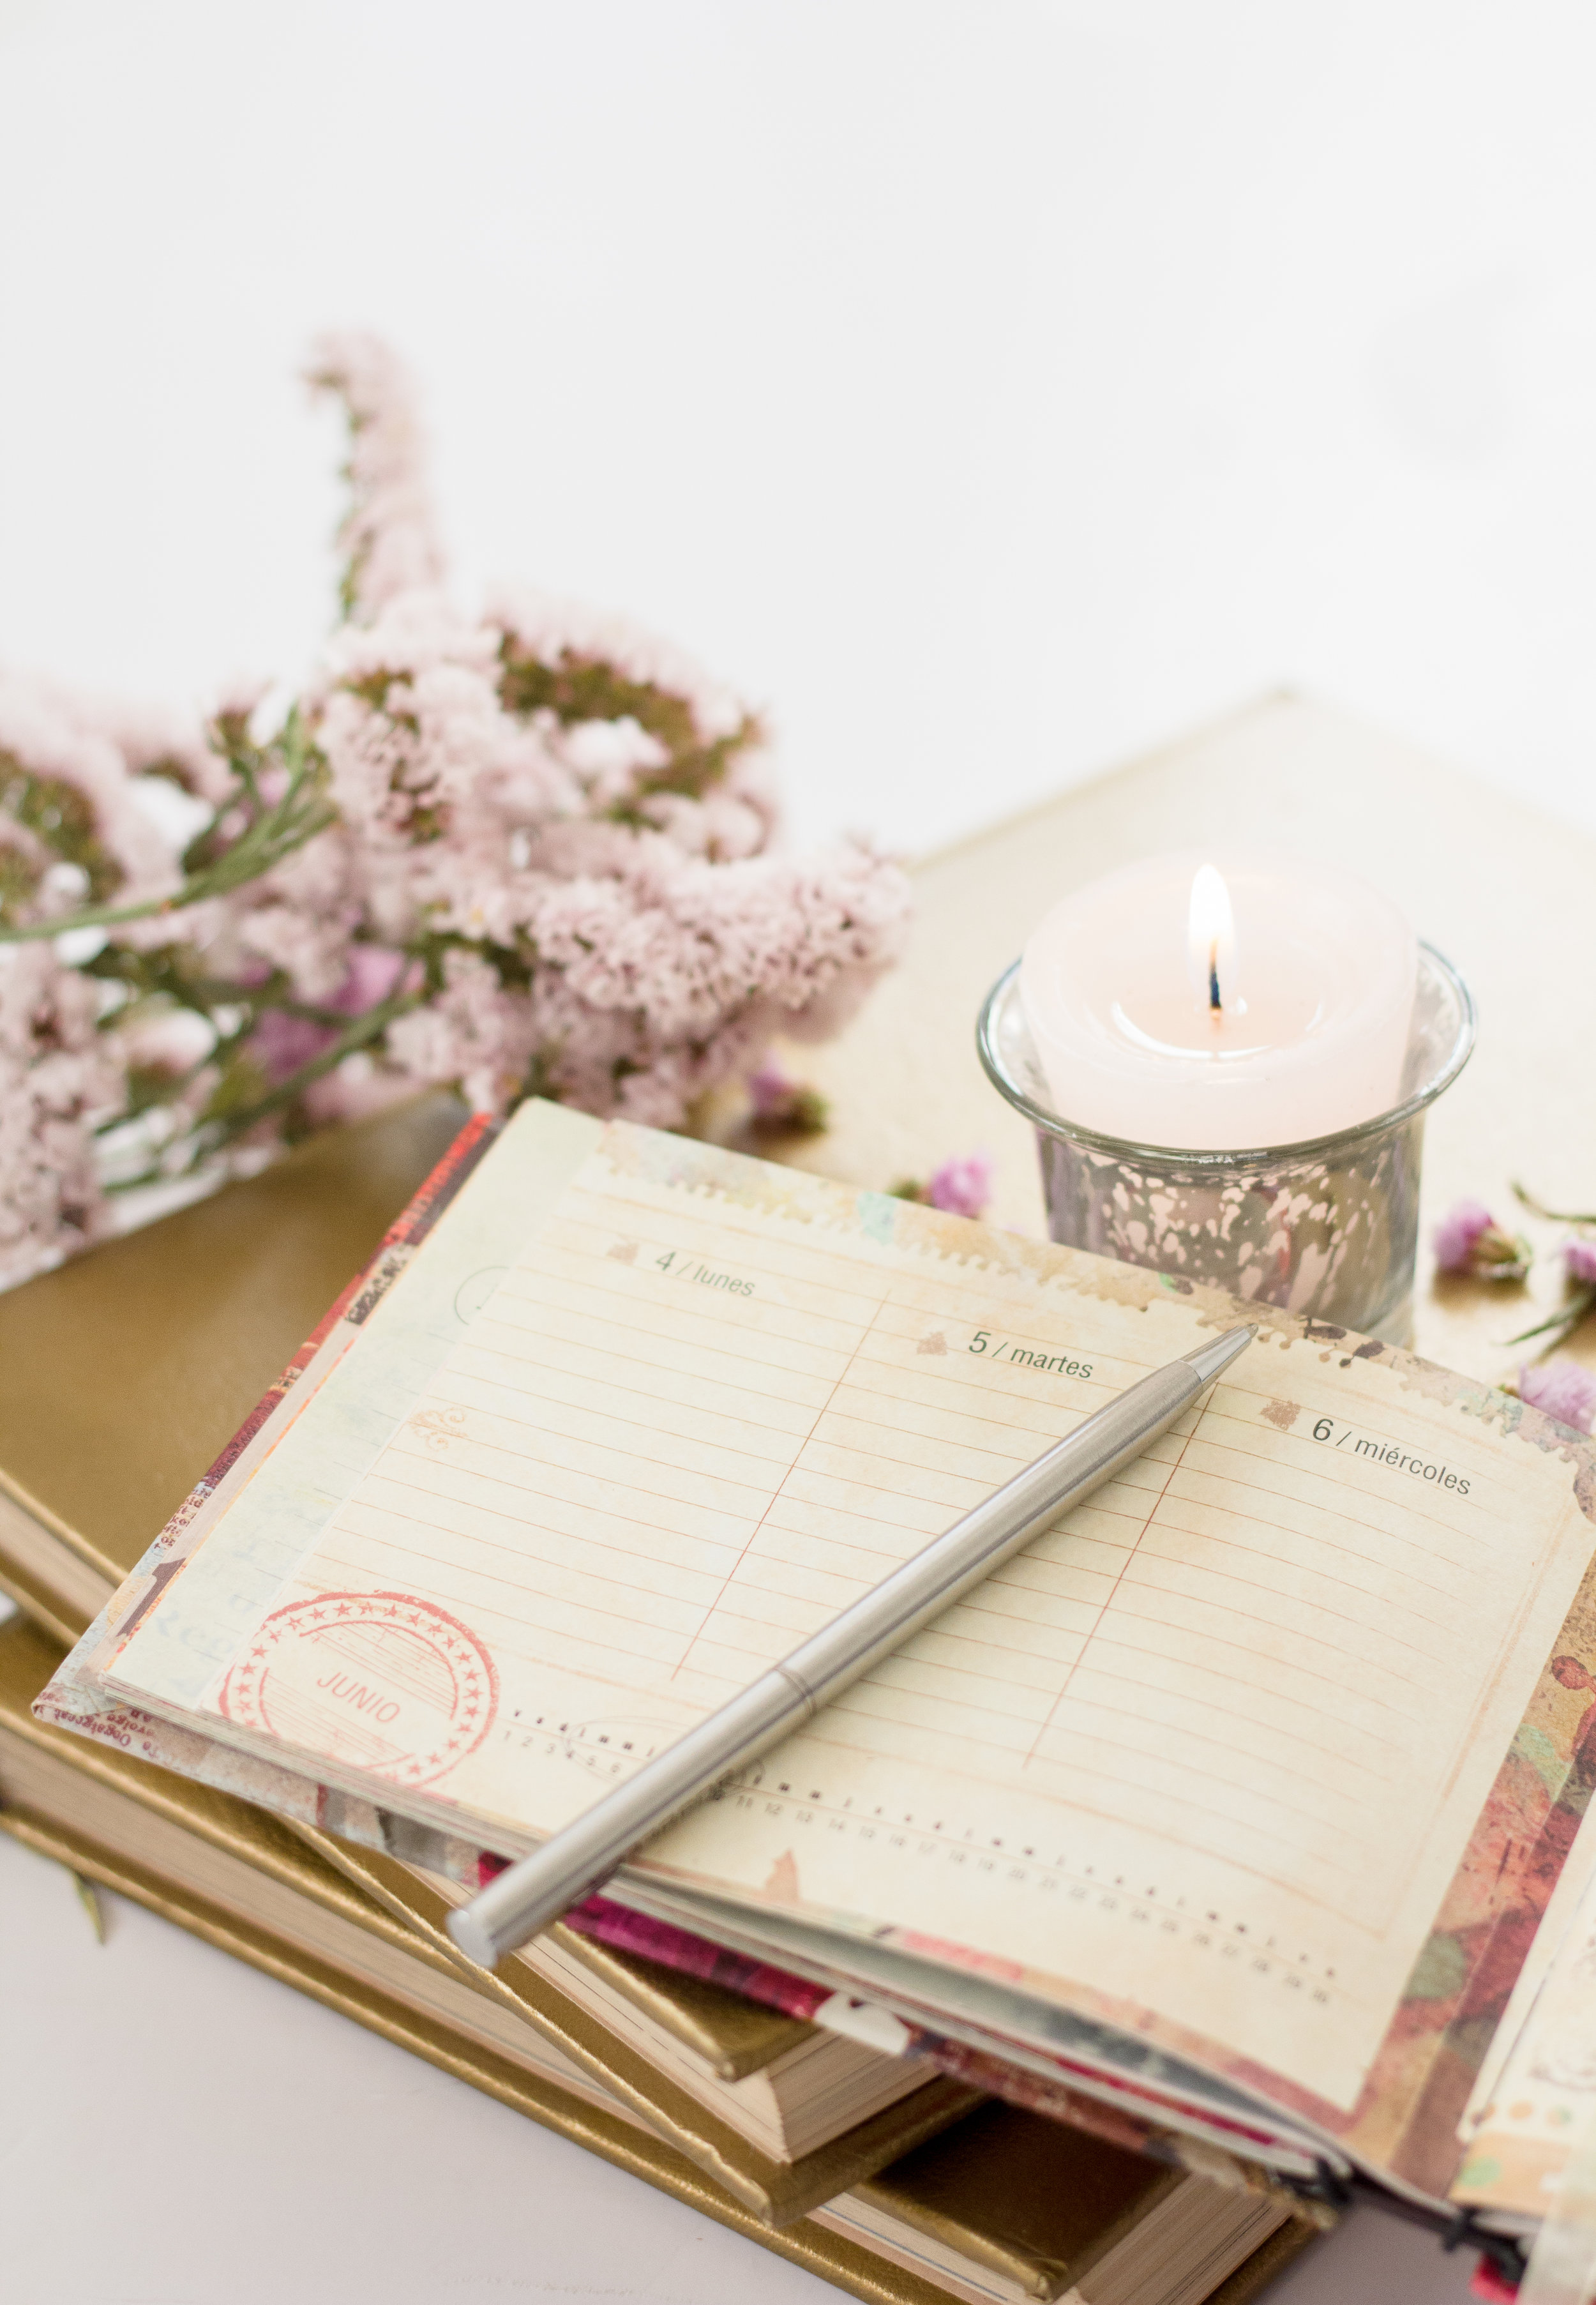 - Decide on your boundaries, journal them and remember to respect them always xx